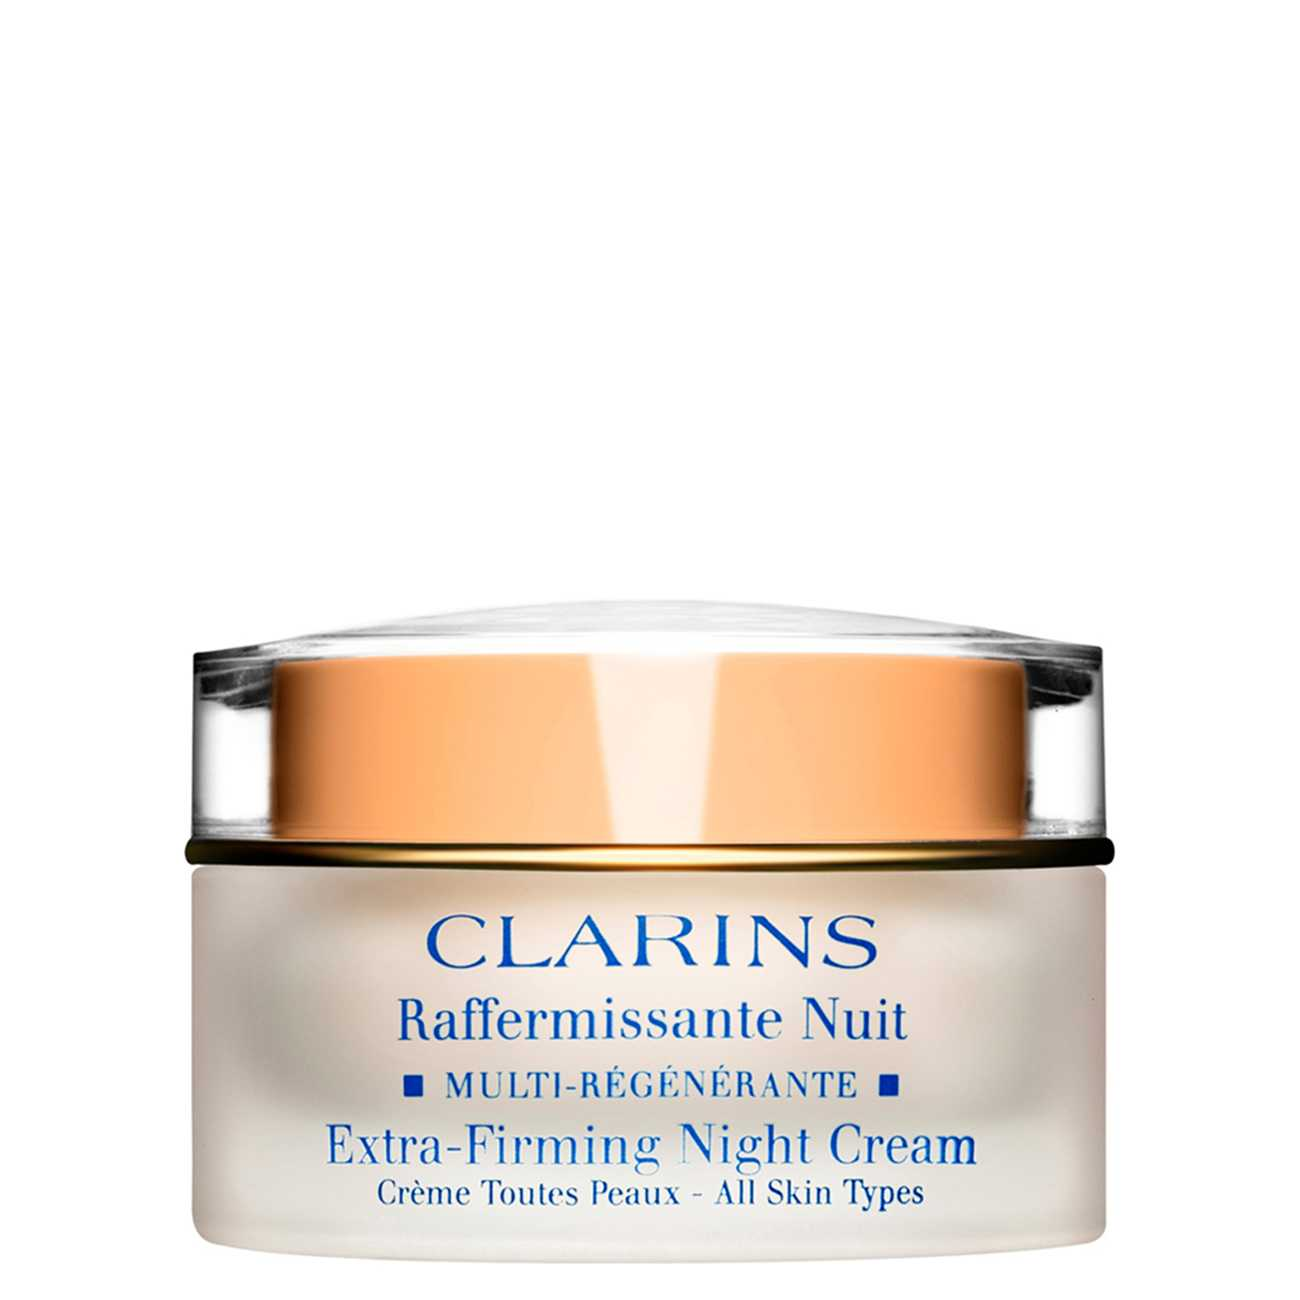 EXTRA FIRMING NIGHT CREAM 50 ML